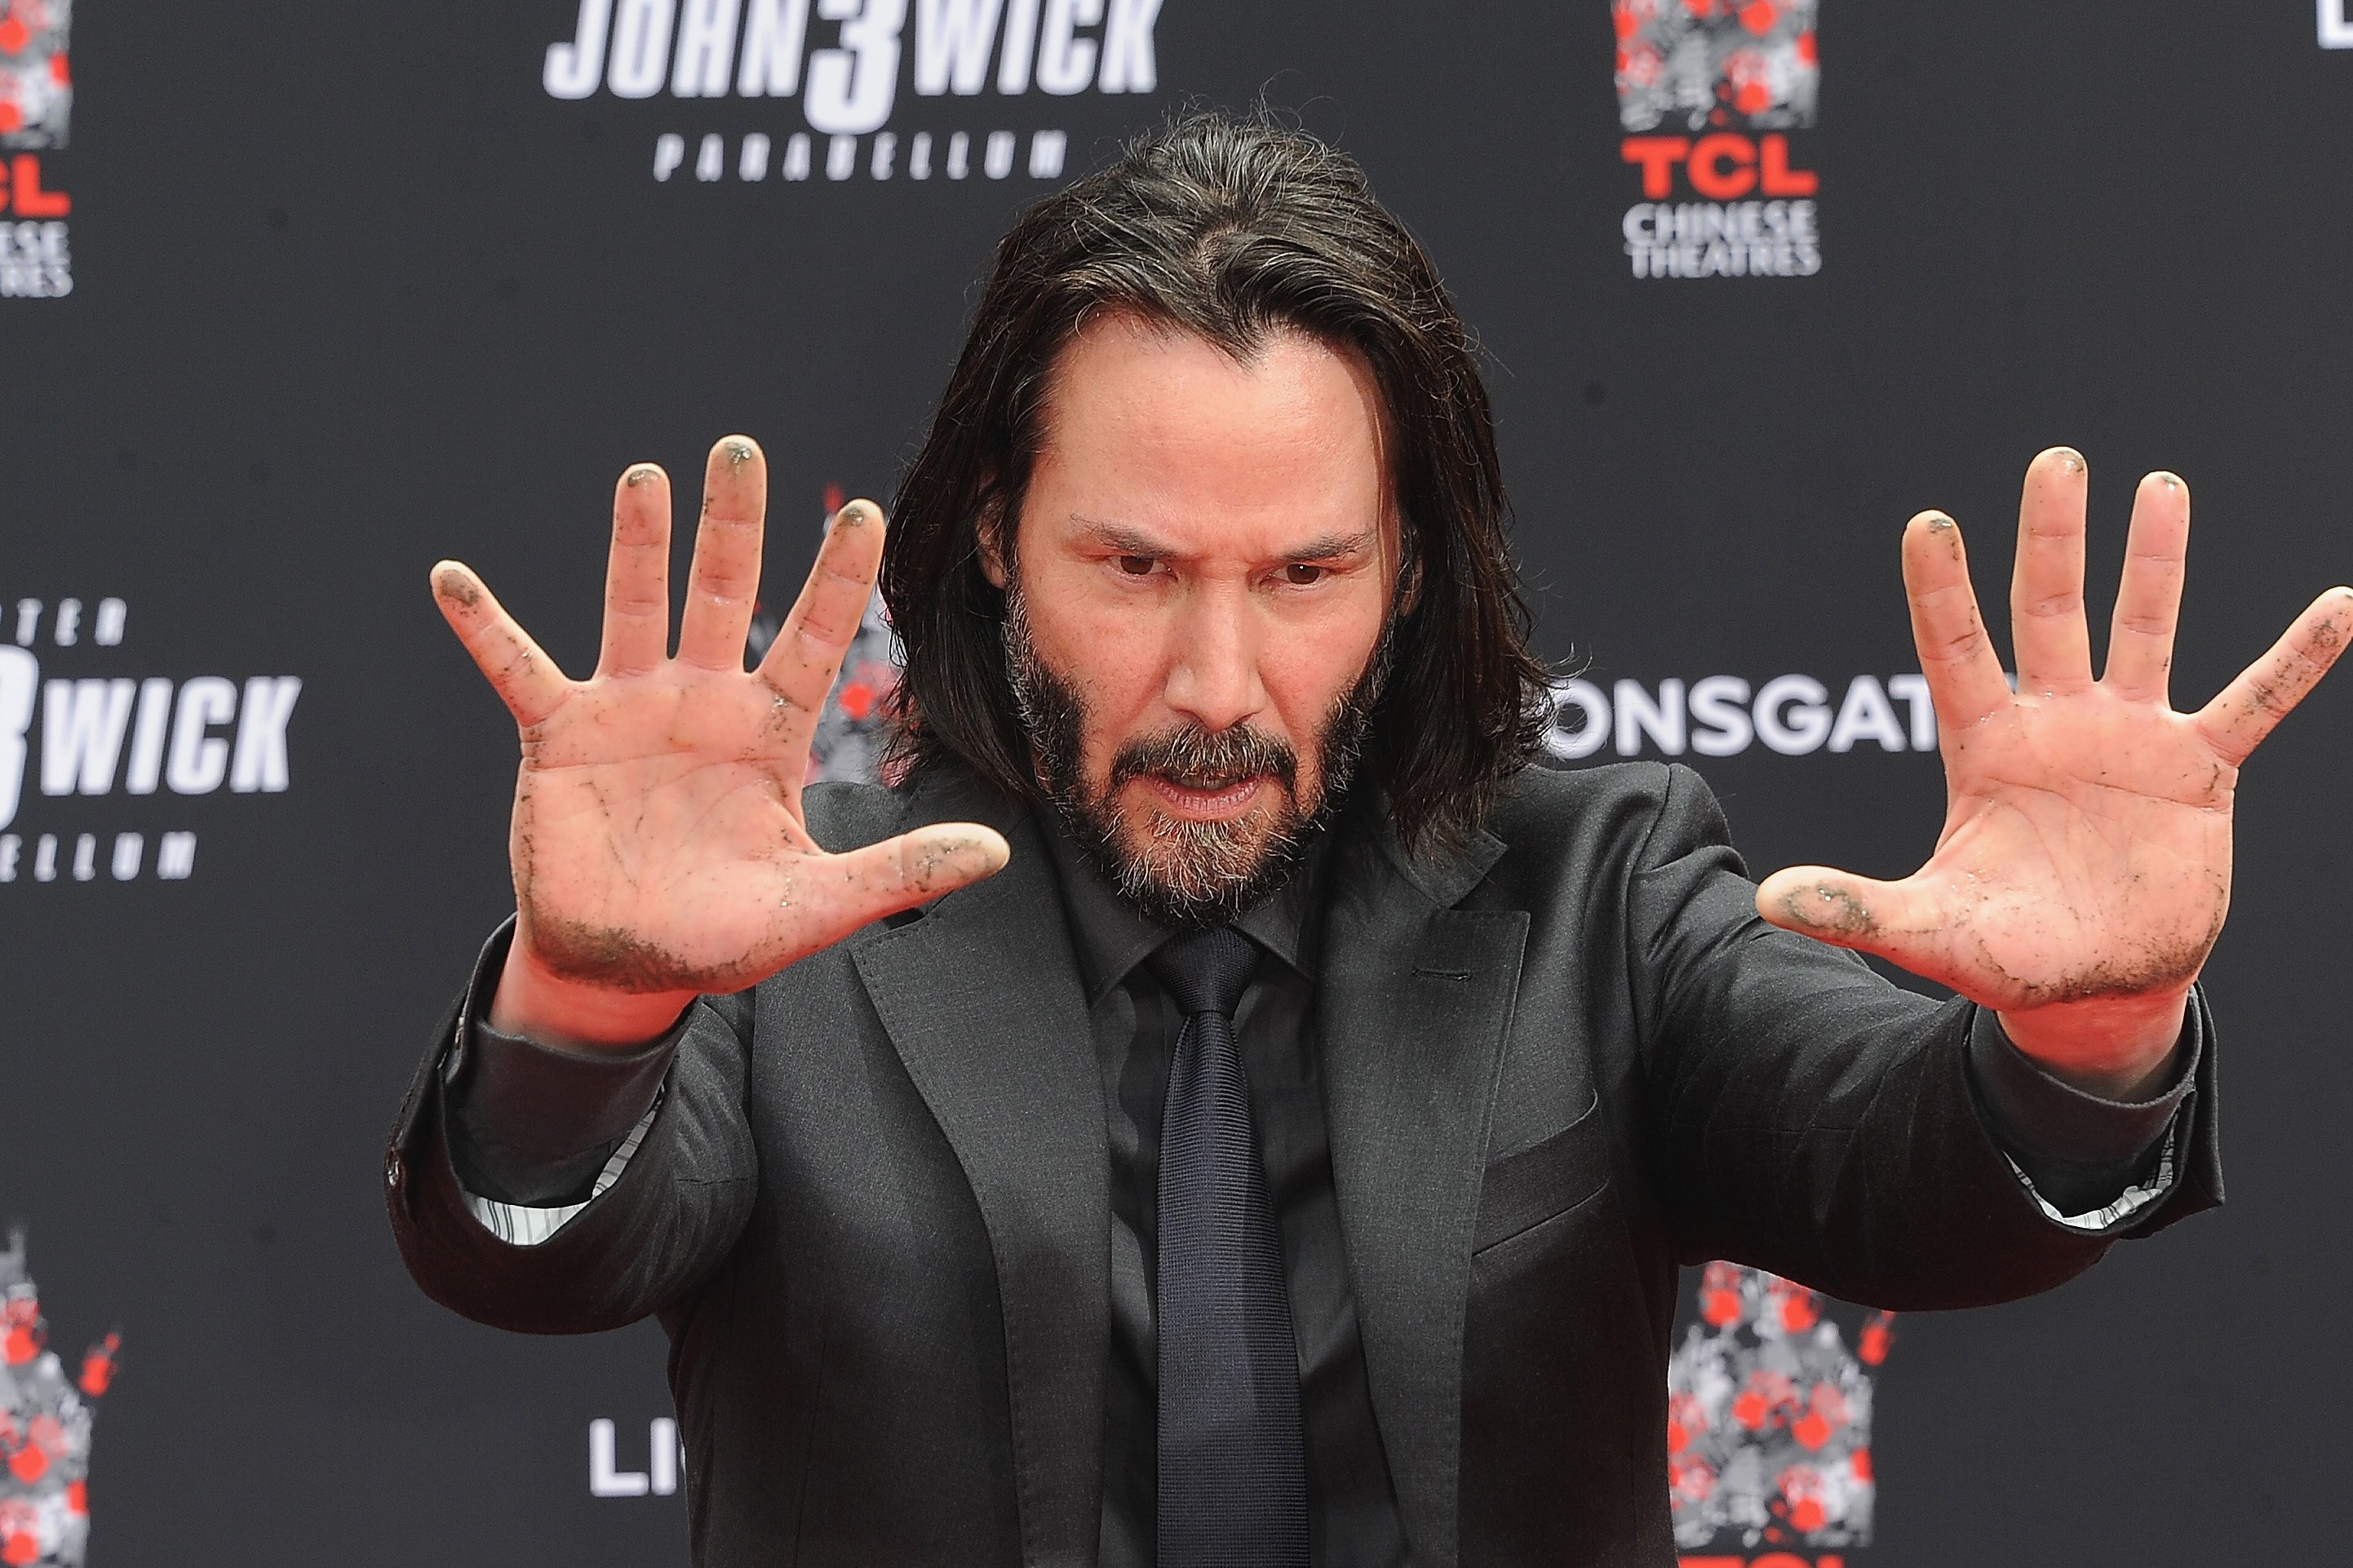 Image Credits: Getty Images | Keanu is a believer